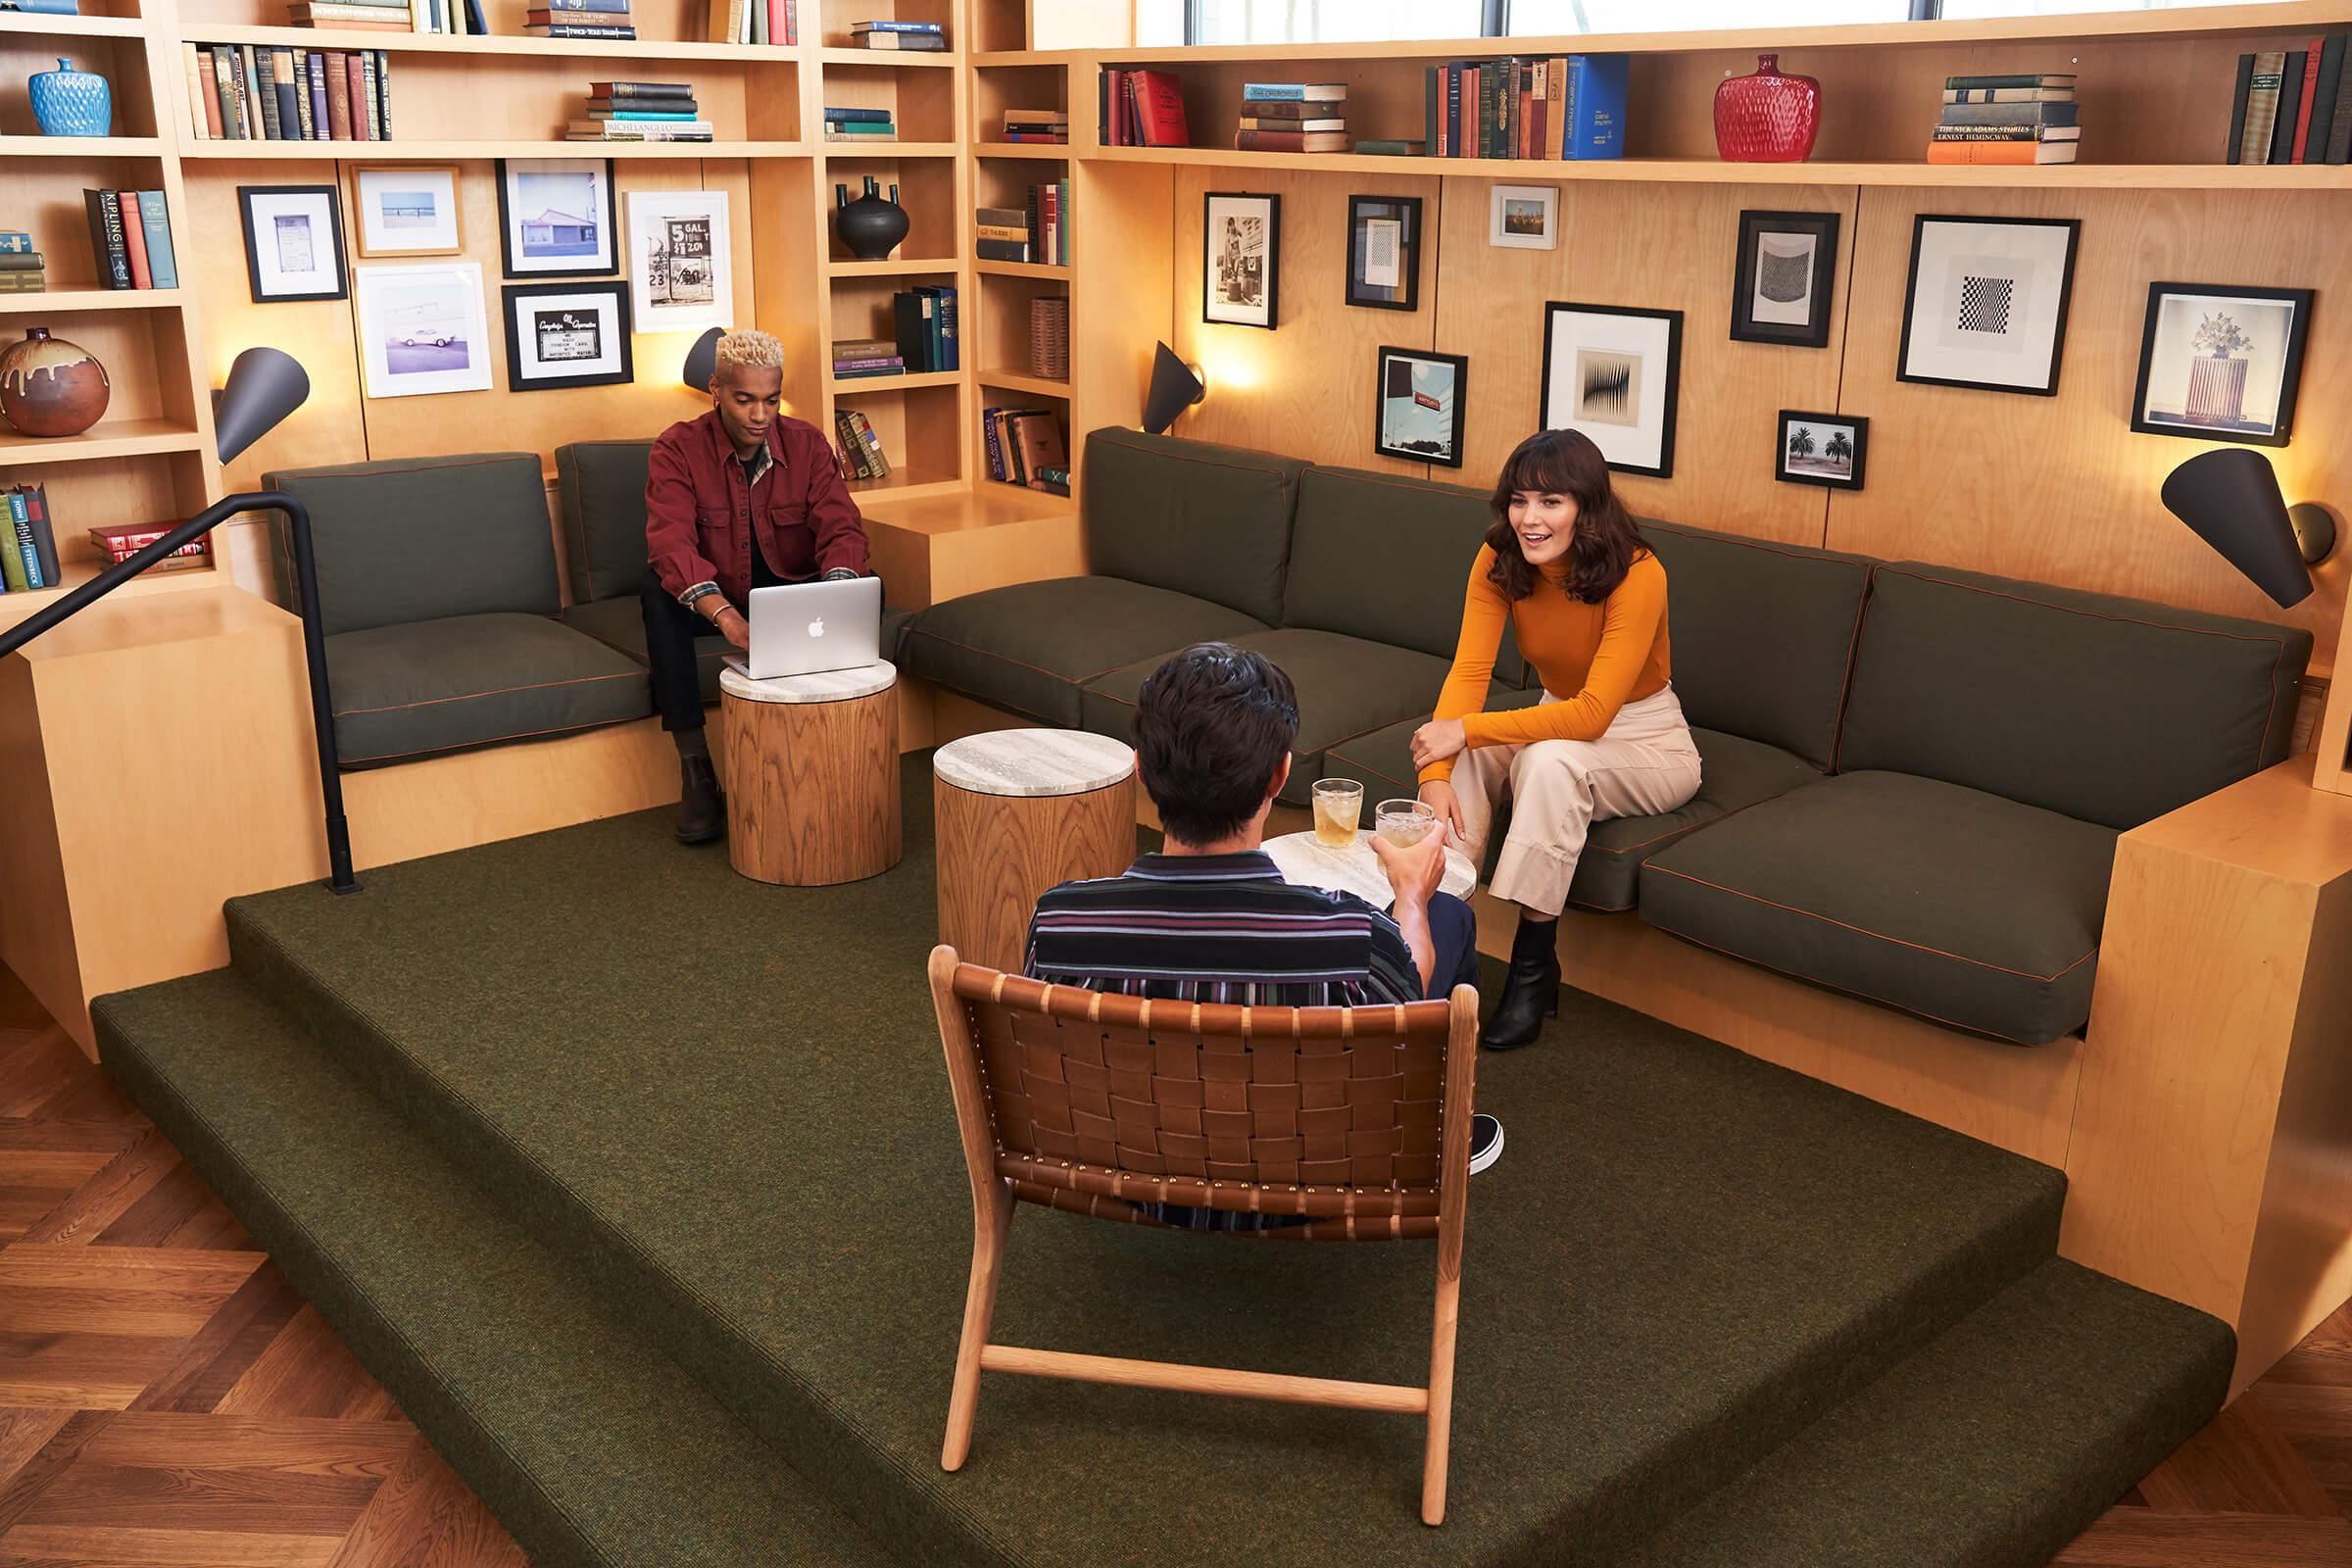 A group of people sitting on a couch